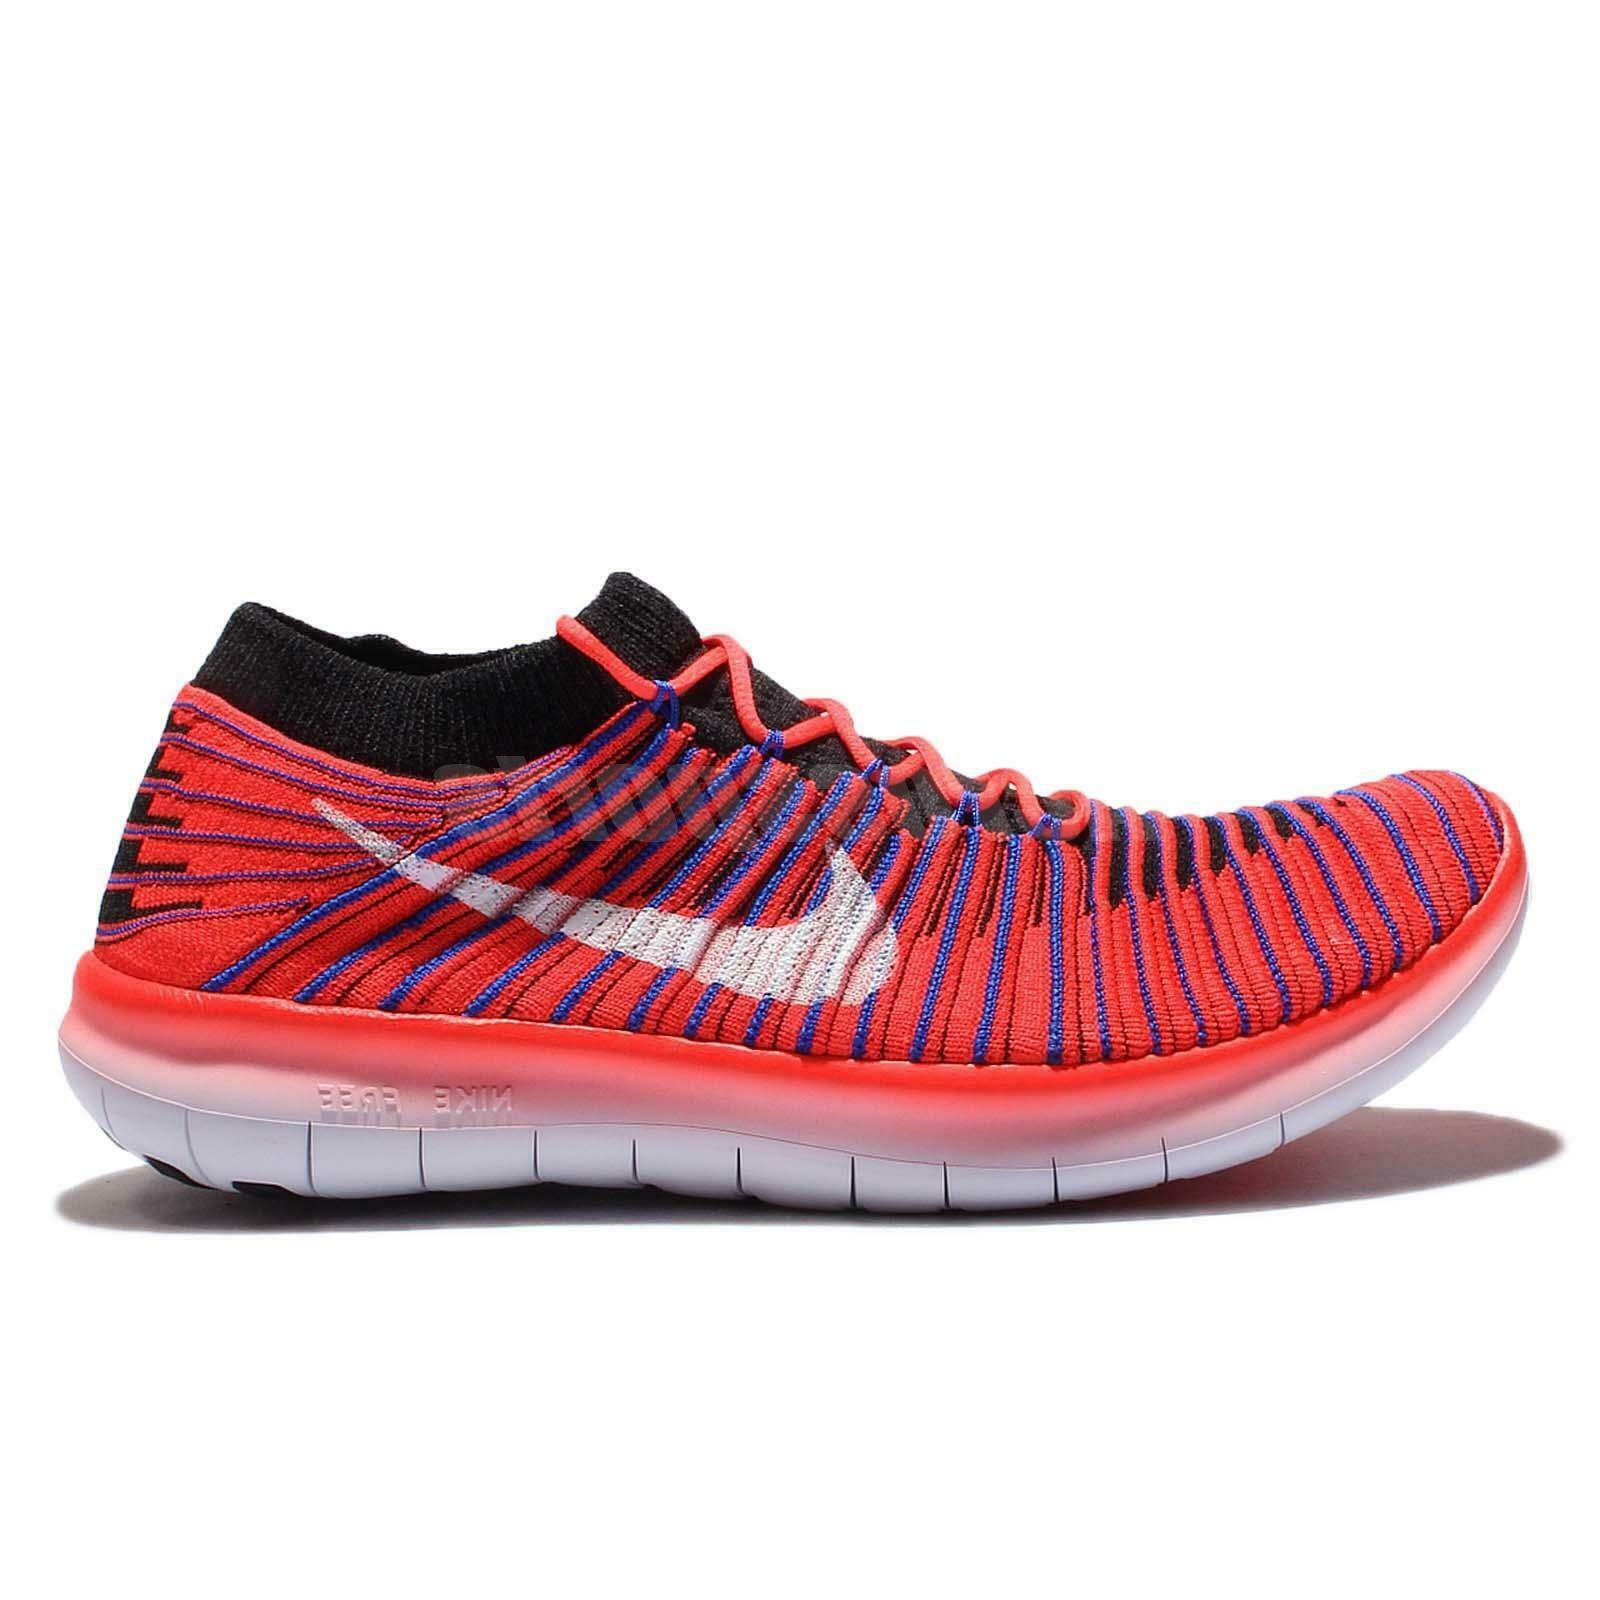 Mens NIKE FREE RN MOTION FLYKNIT Bright Crimson Trainers 834584 600